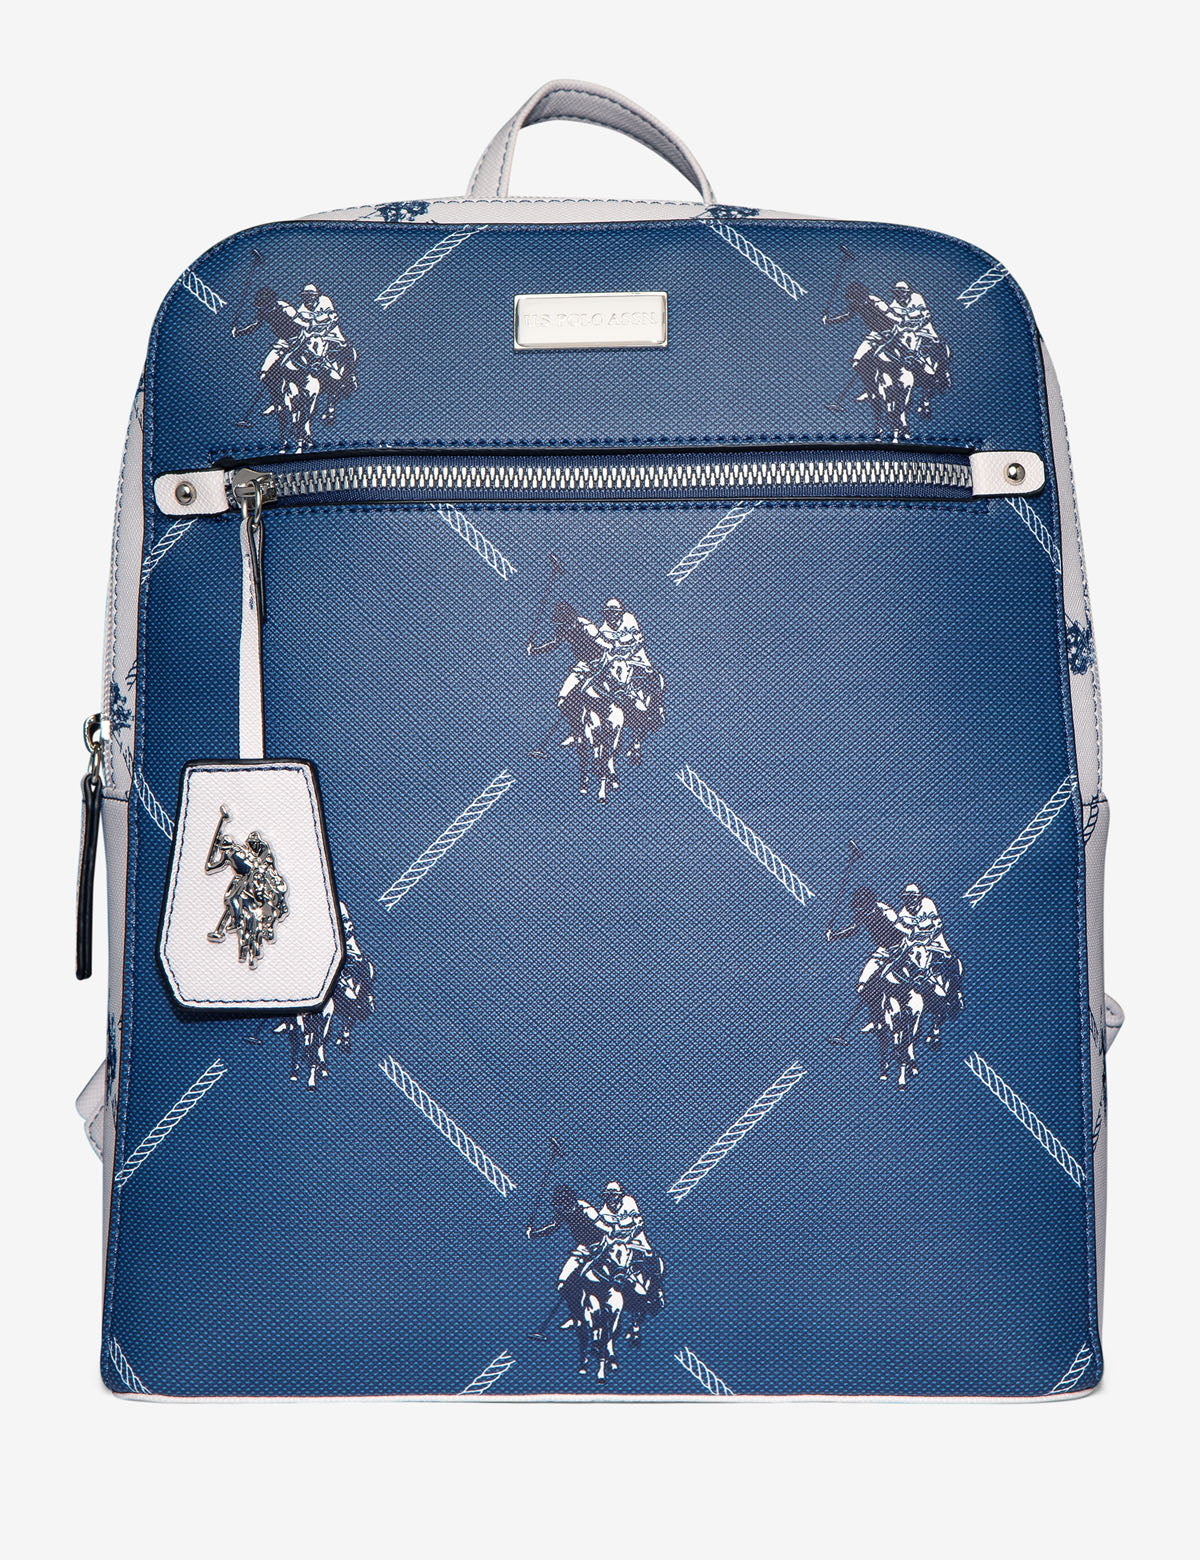 COLORBLOCK SIGNATURE BACKPACK - U.S. Polo Assn.